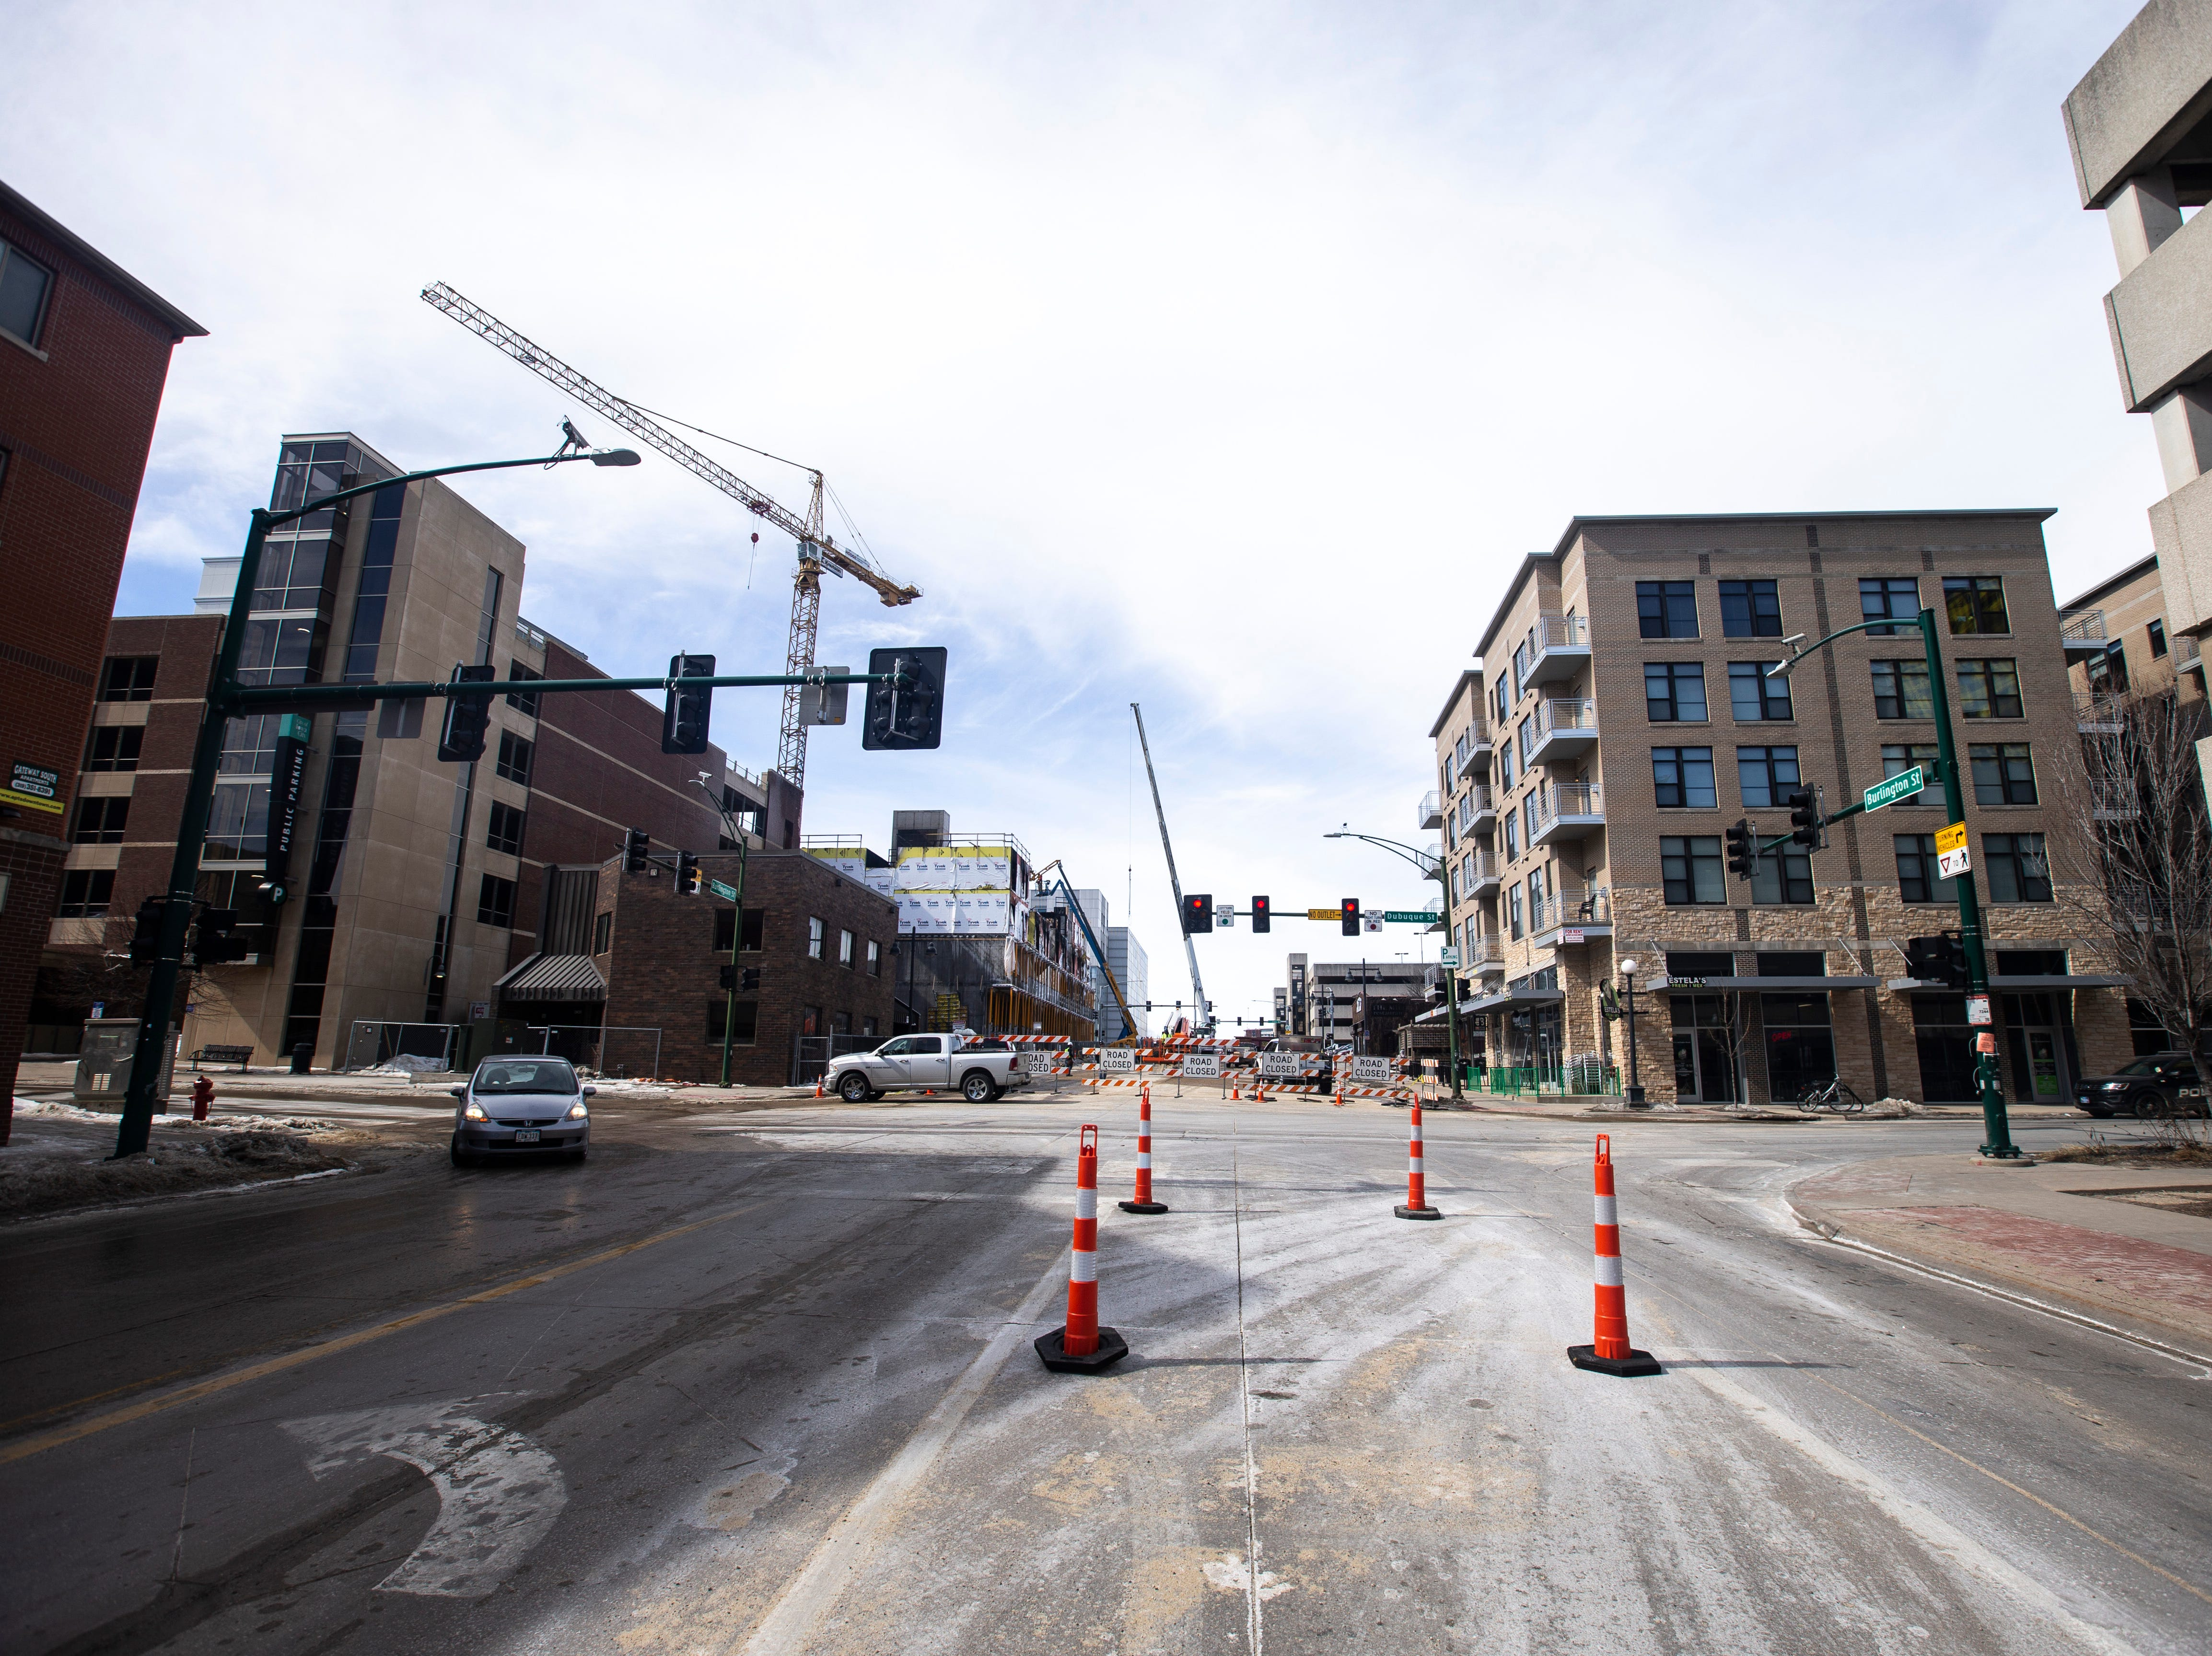 Signs block the road between Dubuque and Clinton streets as workers begin to take down fire damage at the Hieronymous Square construction site on Wednesday, March 6, 2019, at 314 S. Clinton Street in downtown Iowa City, Iowa.